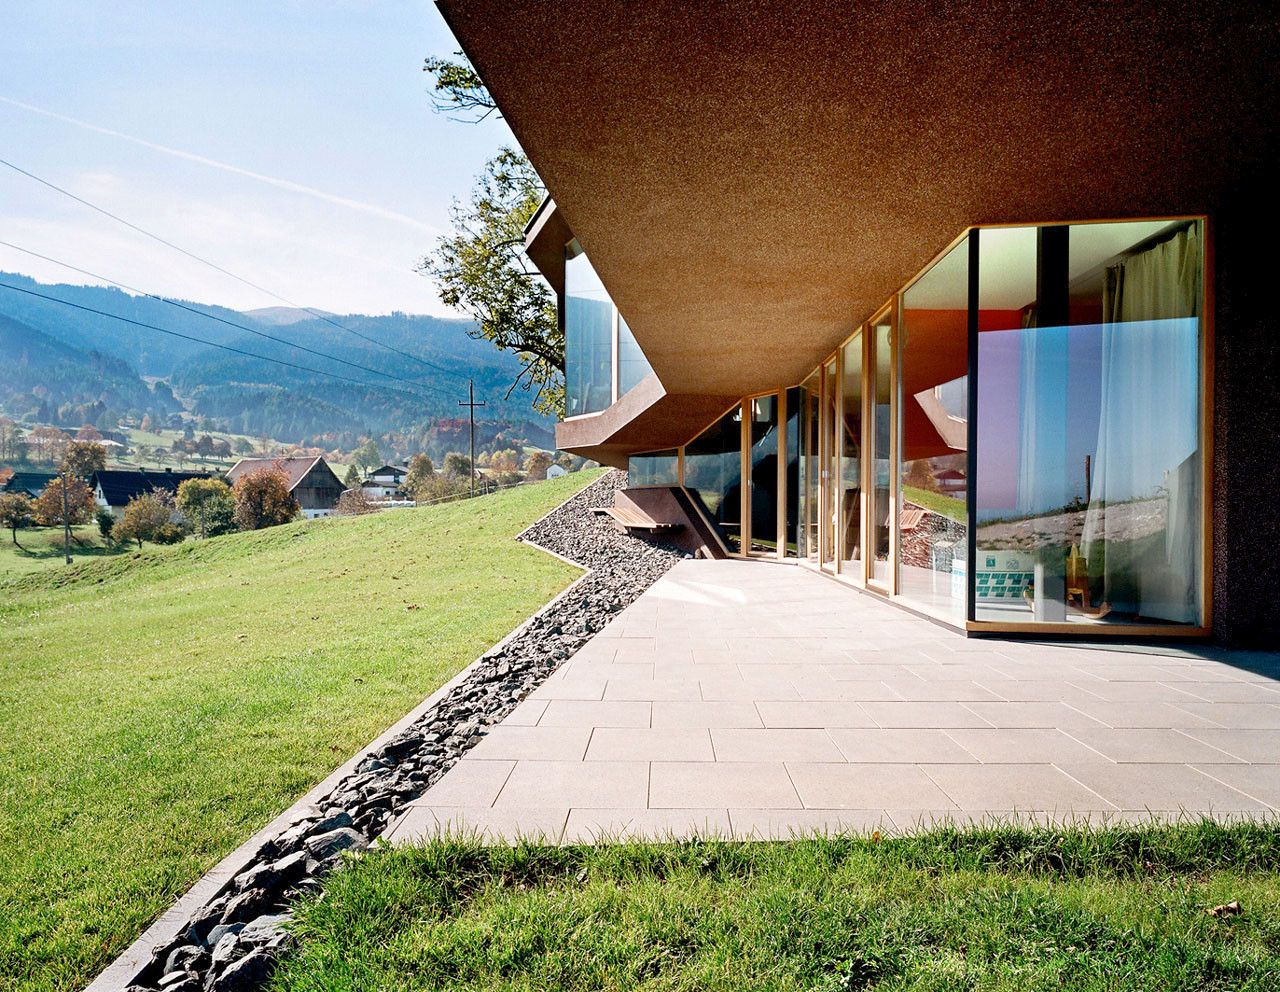 Embedded House with a beautiful Landscape Porch